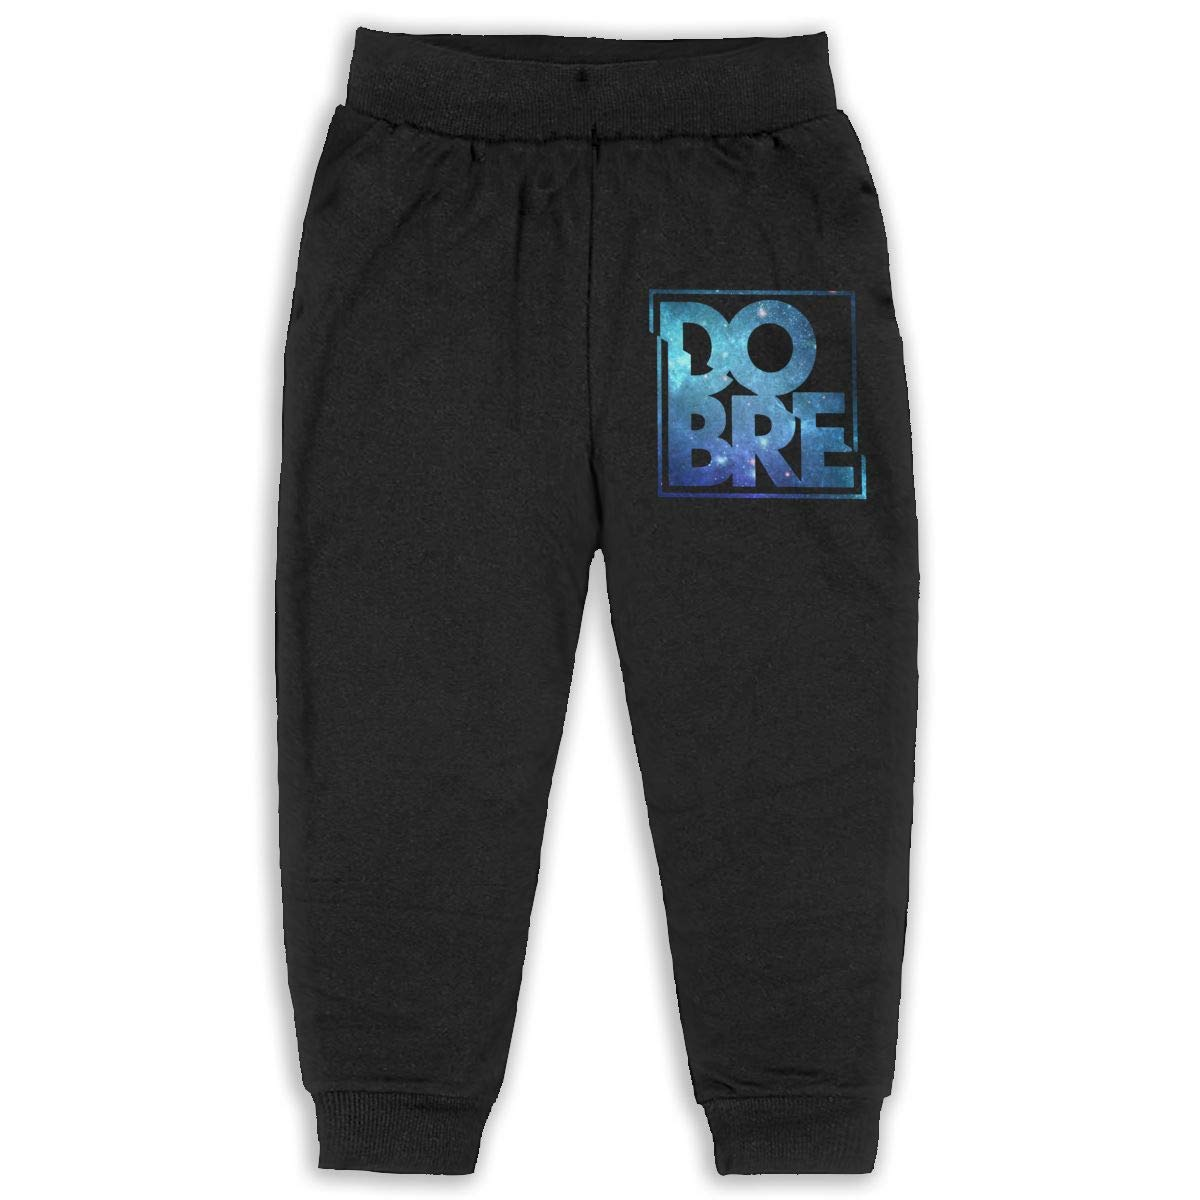 Kids Dobre Brothers Music Band Boys Girls Sweatpants Sport Trousers Back Pocket Black